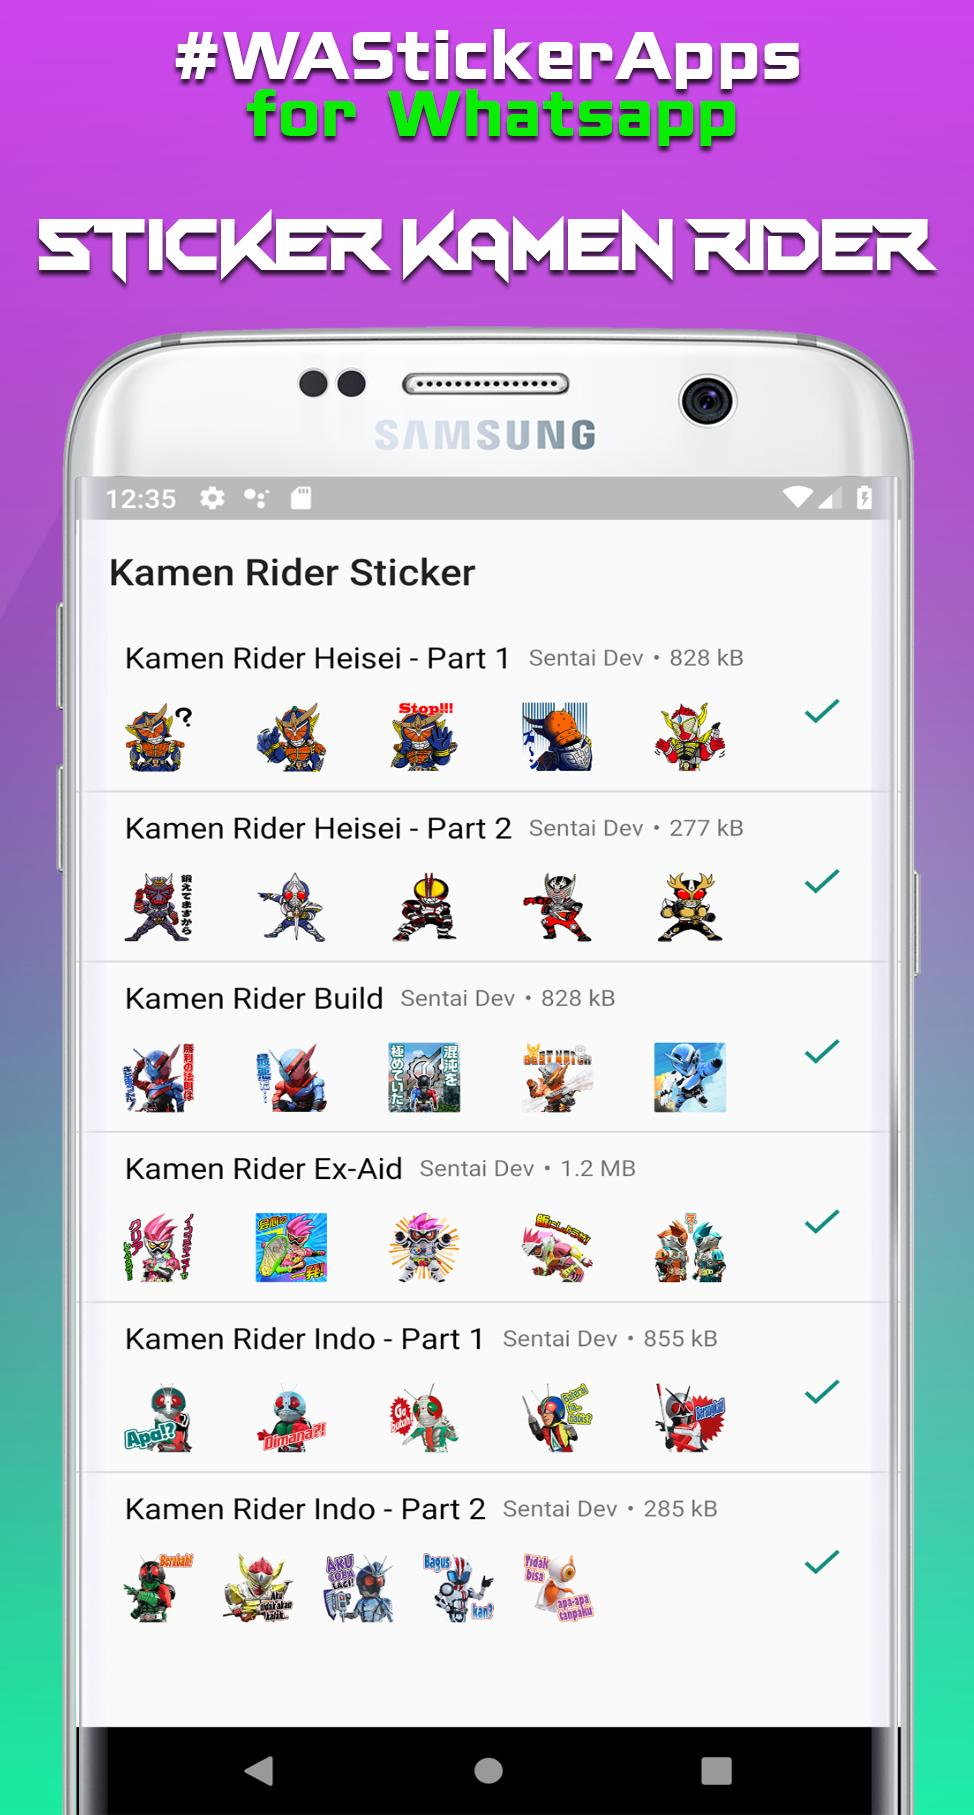 Sticker Henshin Masked Rider For Whatsapp For Android Apk